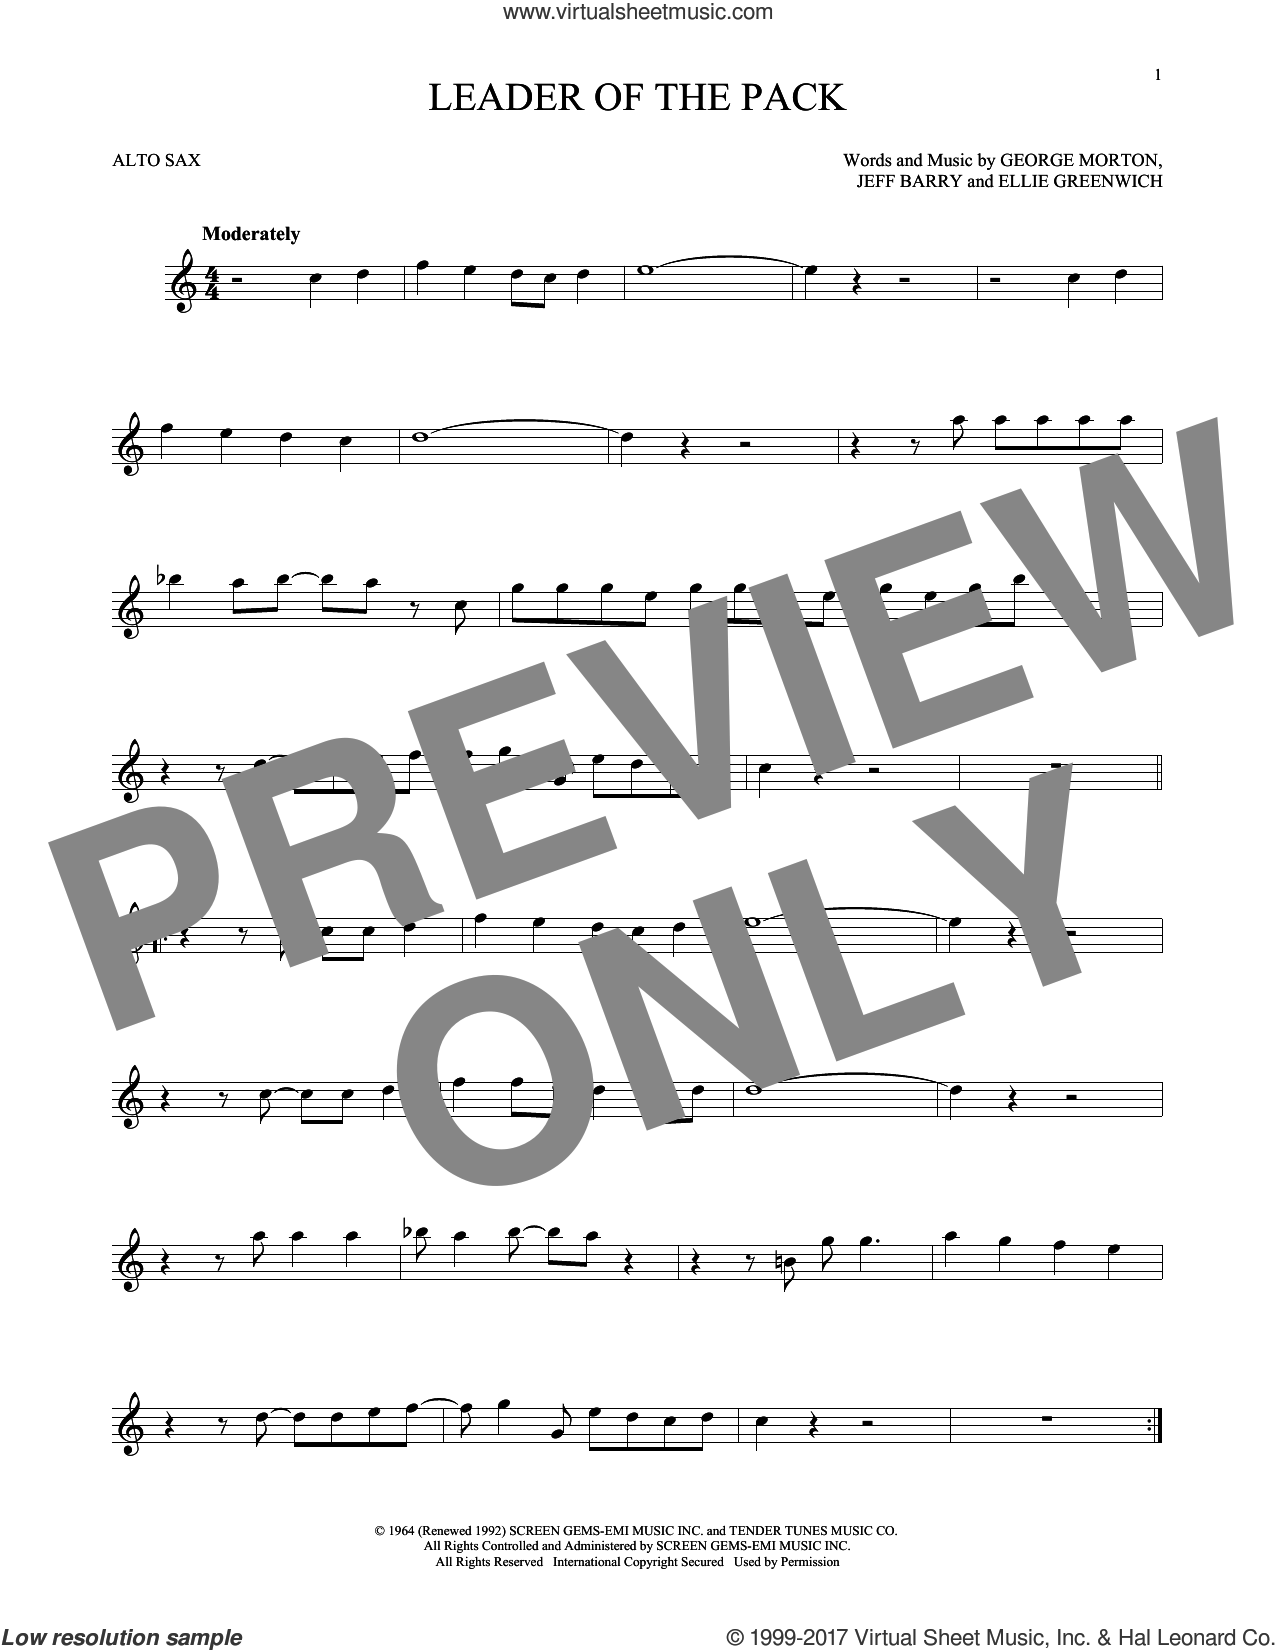 Leader Of The Pack sheet music for alto saxophone solo by The Shangri-Las, Ellie Greenwich, George Morton and Jeff Barry, intermediate skill level